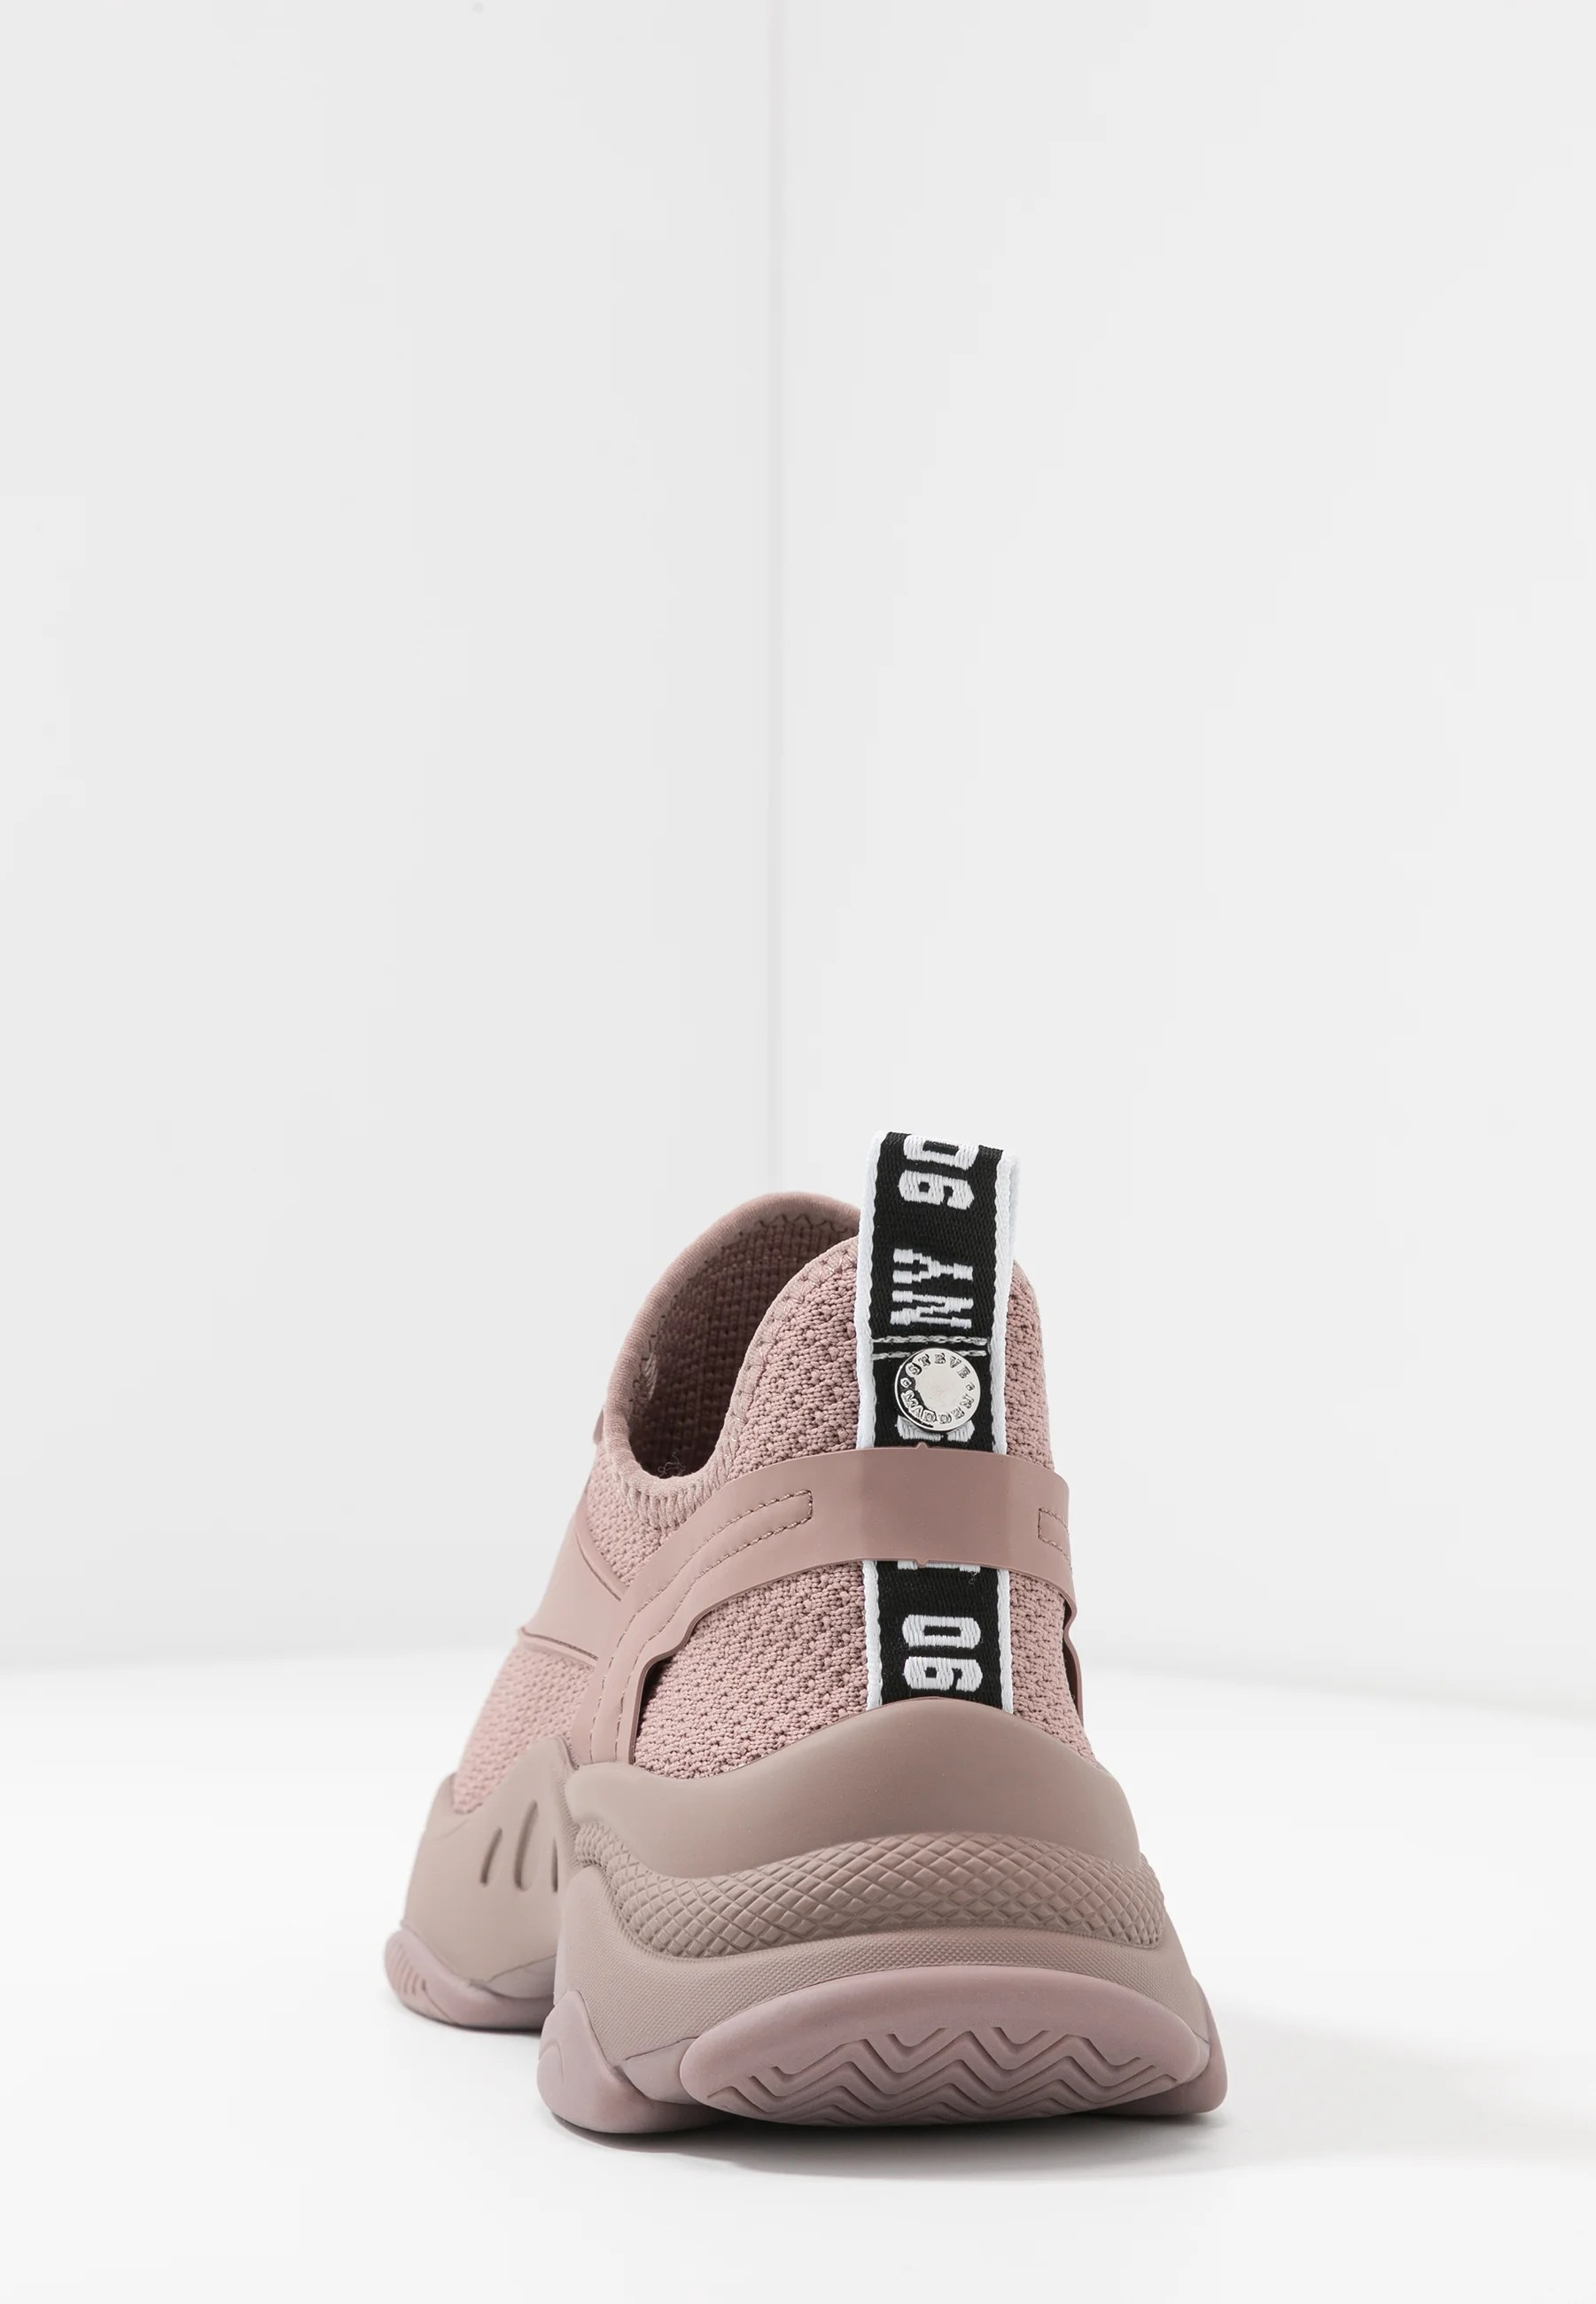 Farbe Mauve Taupe Steve Madden Match - Sneaker Low - Mauve/taupe - Zalando.ch